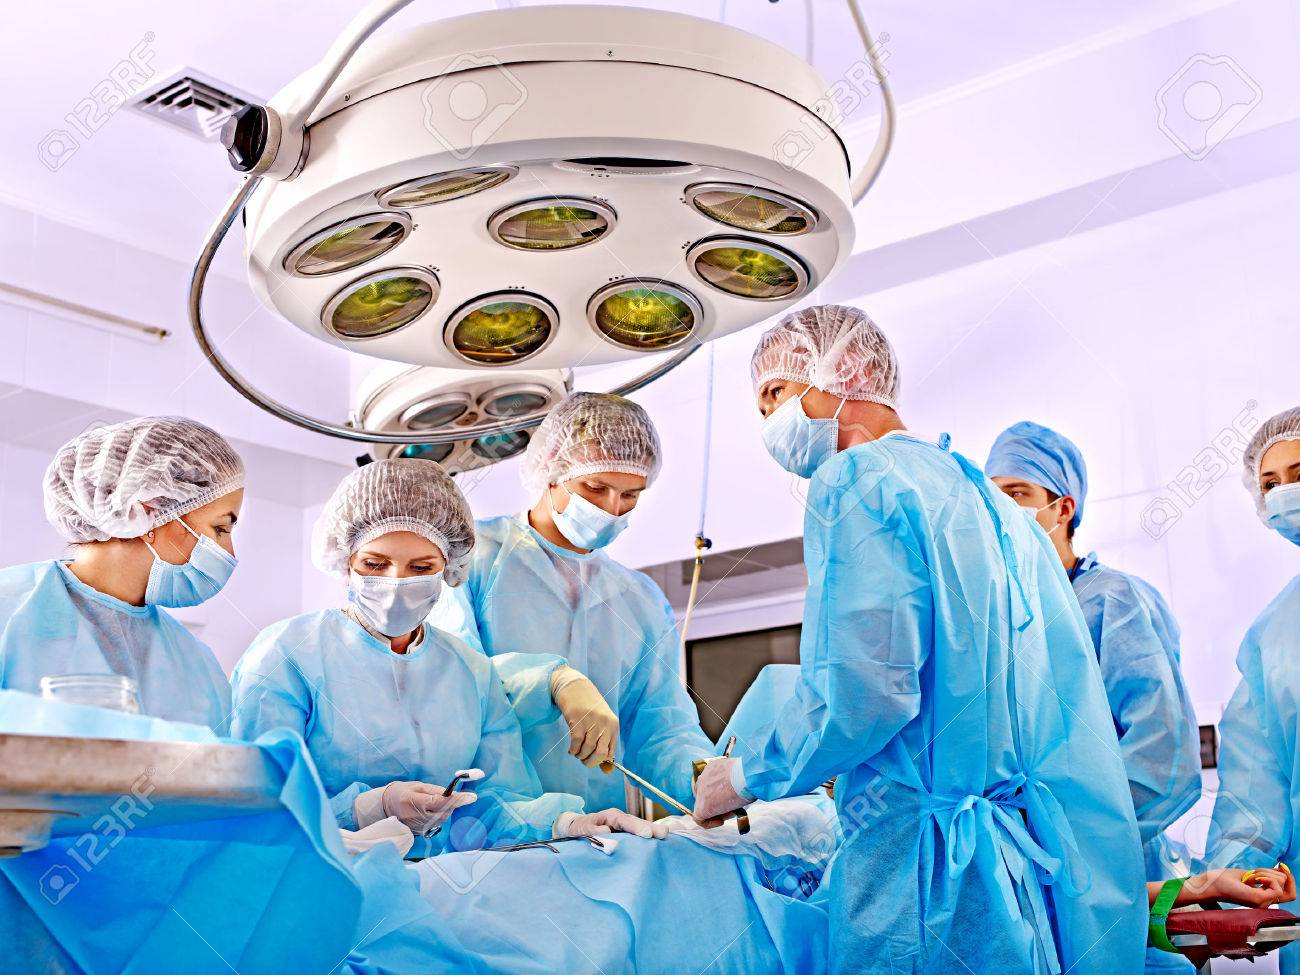 Team surgeon at work in operating room. - 27460716